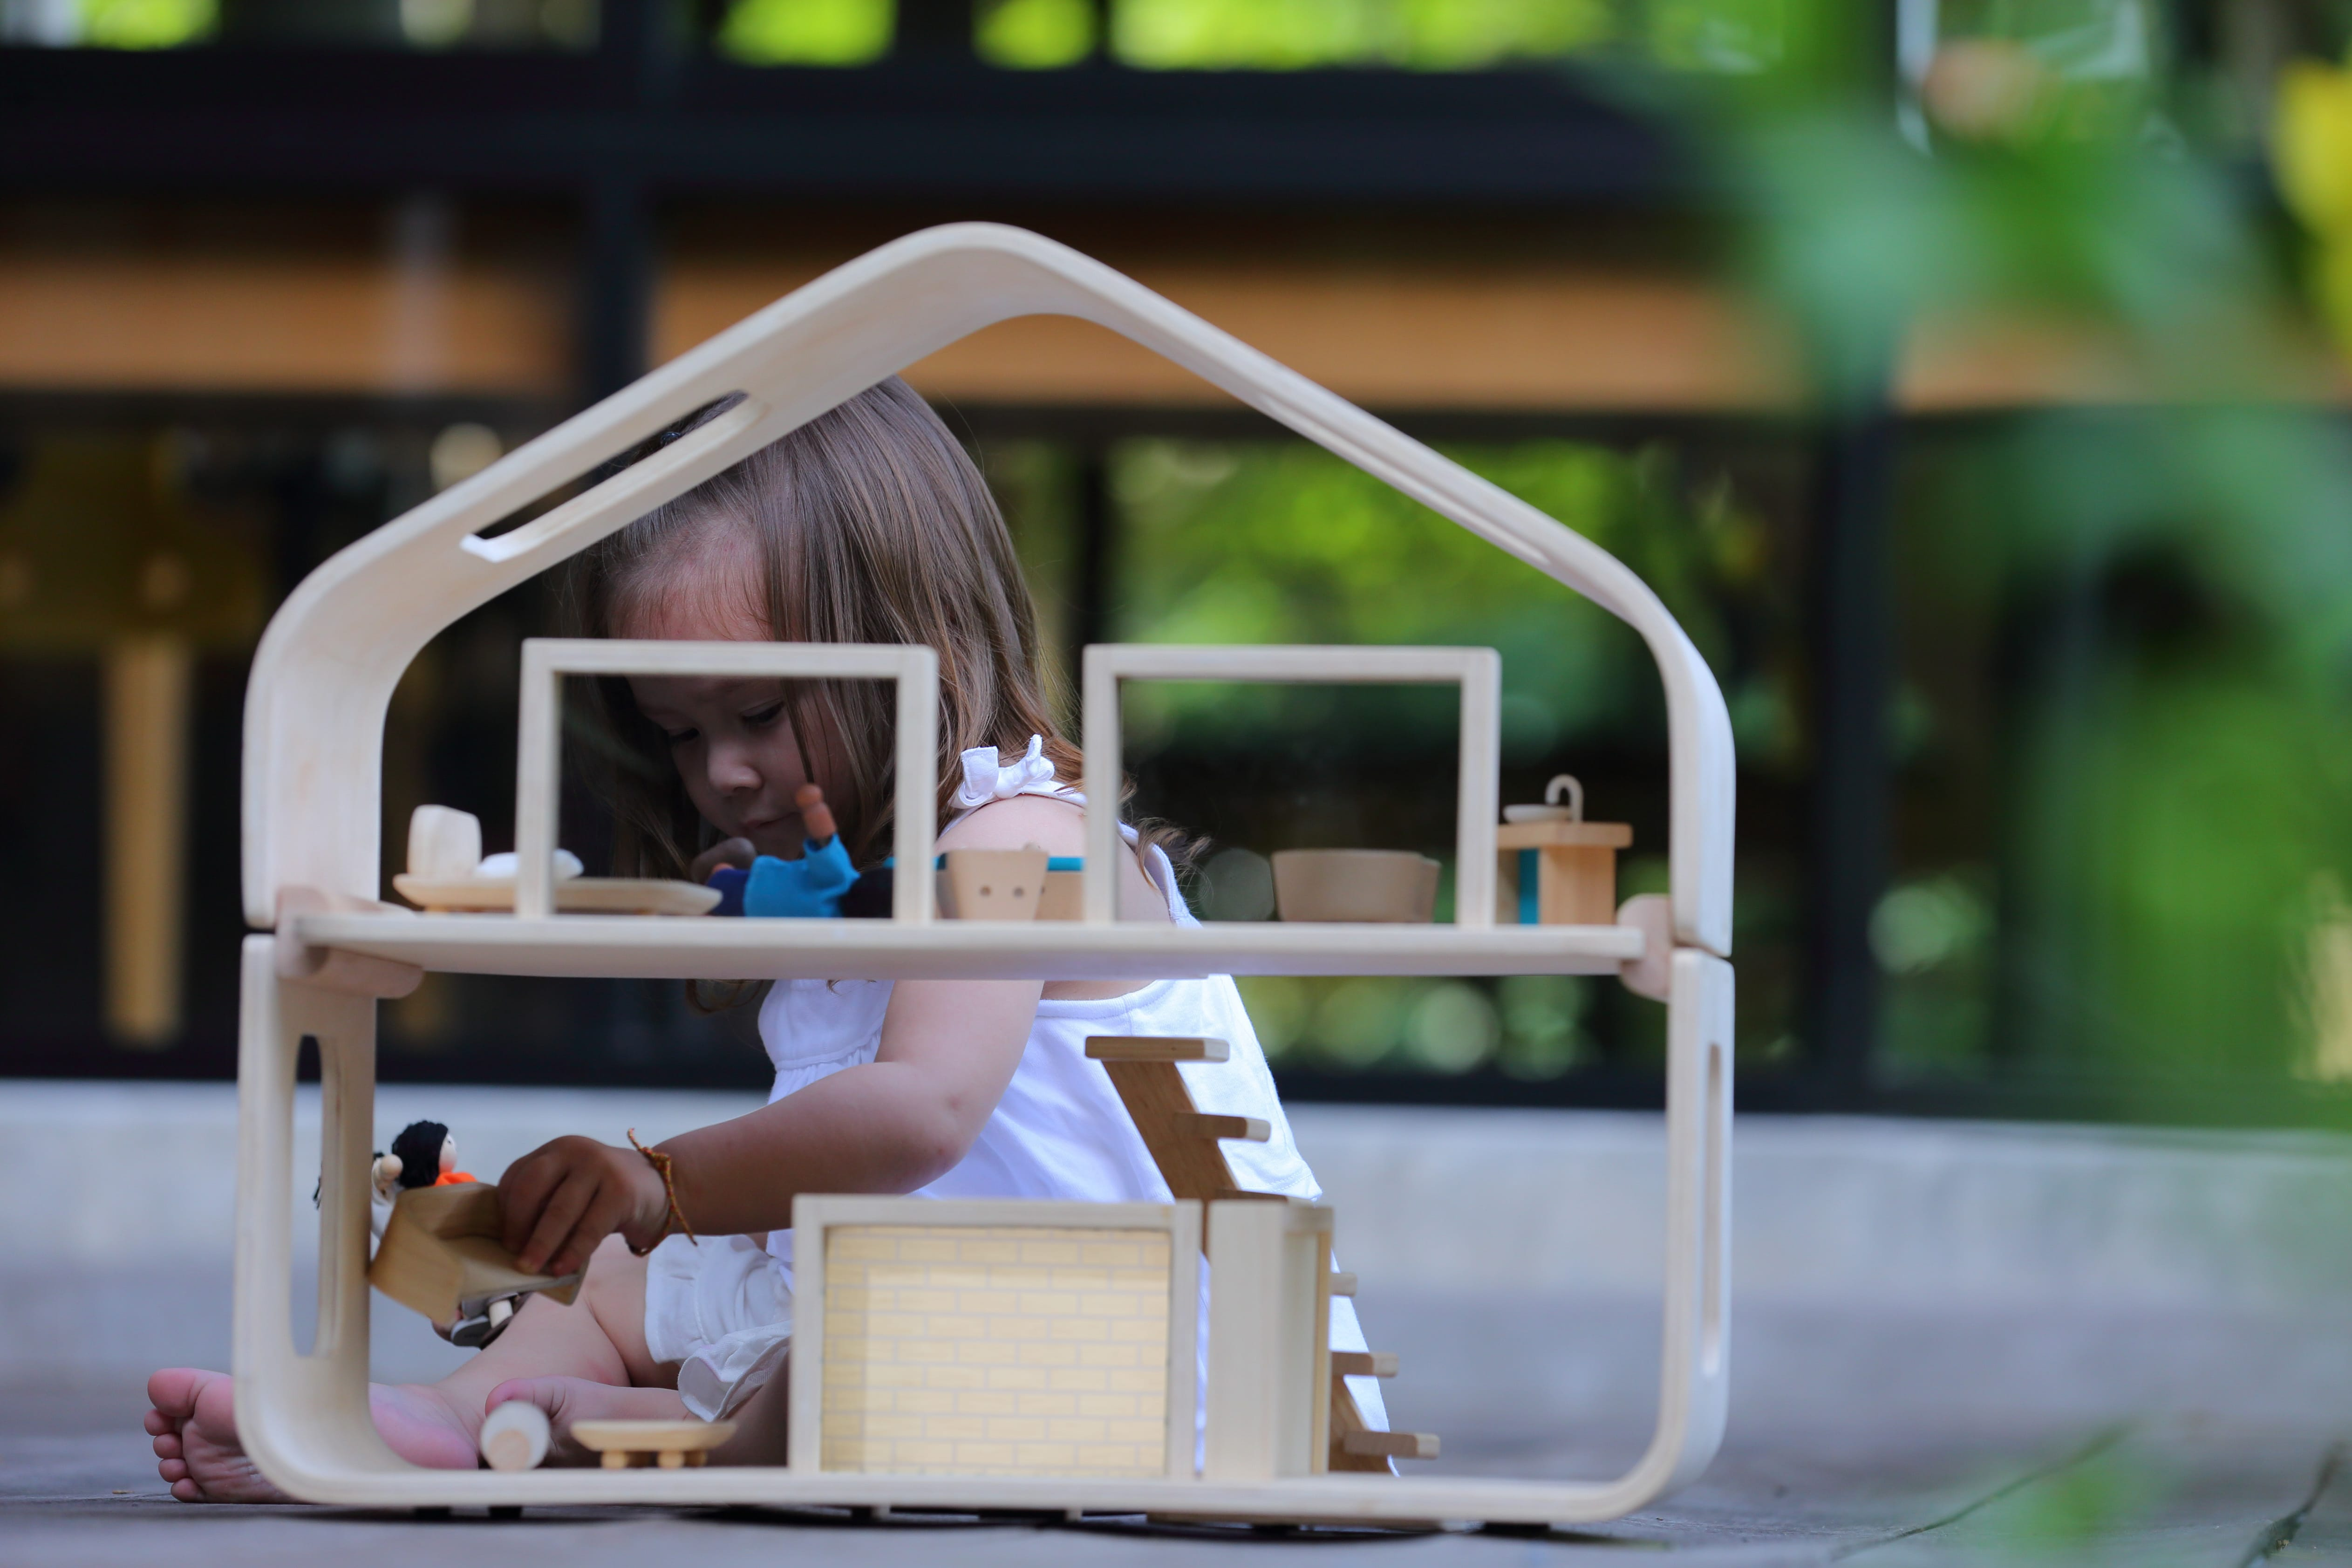 7122_PlanToys_CONTEMPORARY_DOLLHOUSE_Pretend_Play_Imagination_Coordination_Language_and_Communications_Social_Fine_Motor_3yrs_Wooden_toys_Education_toys_Safety_Toys_Non-toxic_4.jpg